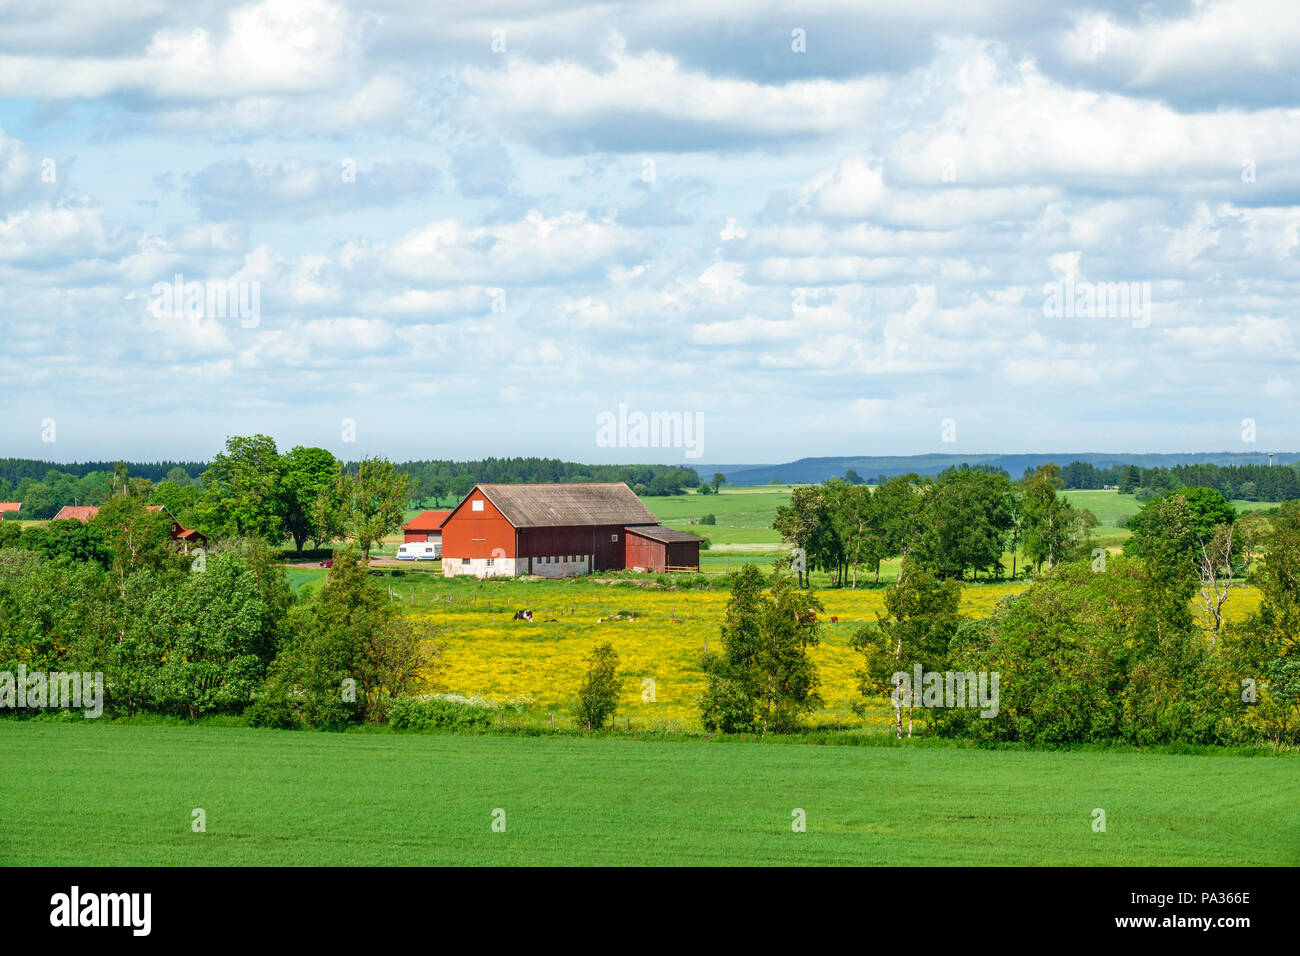 Farm in a rural summer landscape - Stock Image